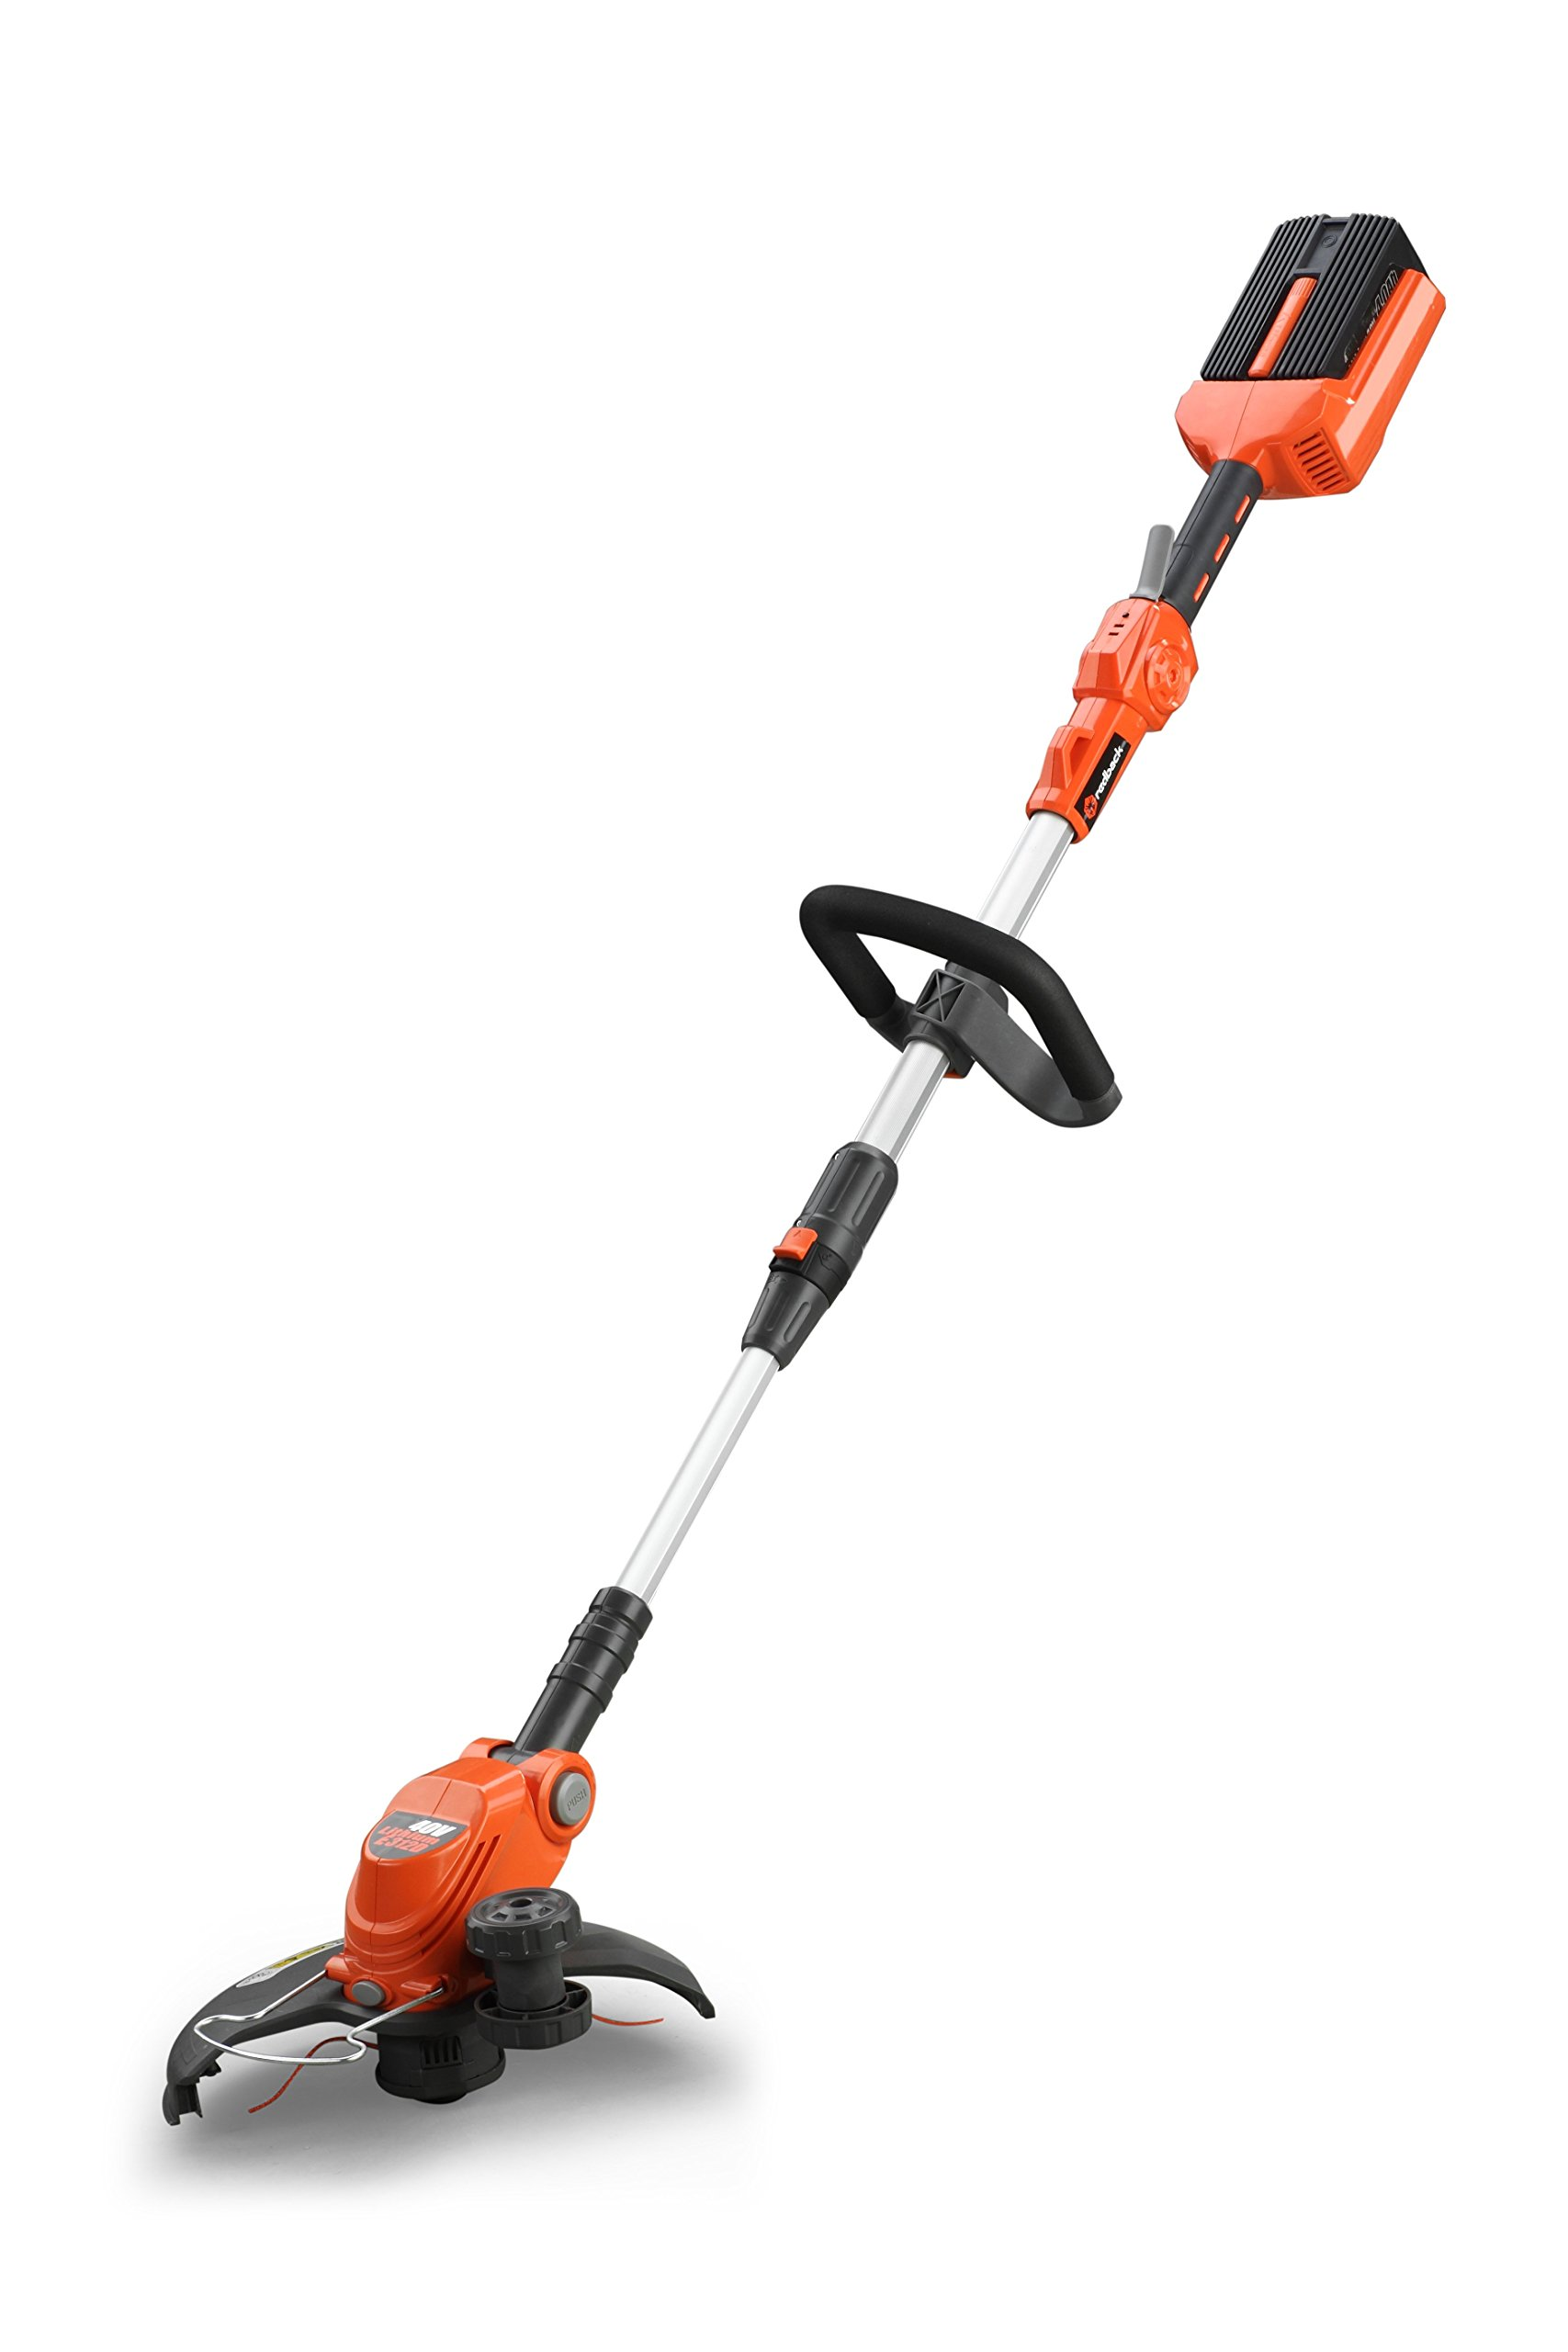 Redback 106064 40V Cordless Li-ion Edger/String Trimmer Kit - 2.0Ah Battery & 2A Charger Included